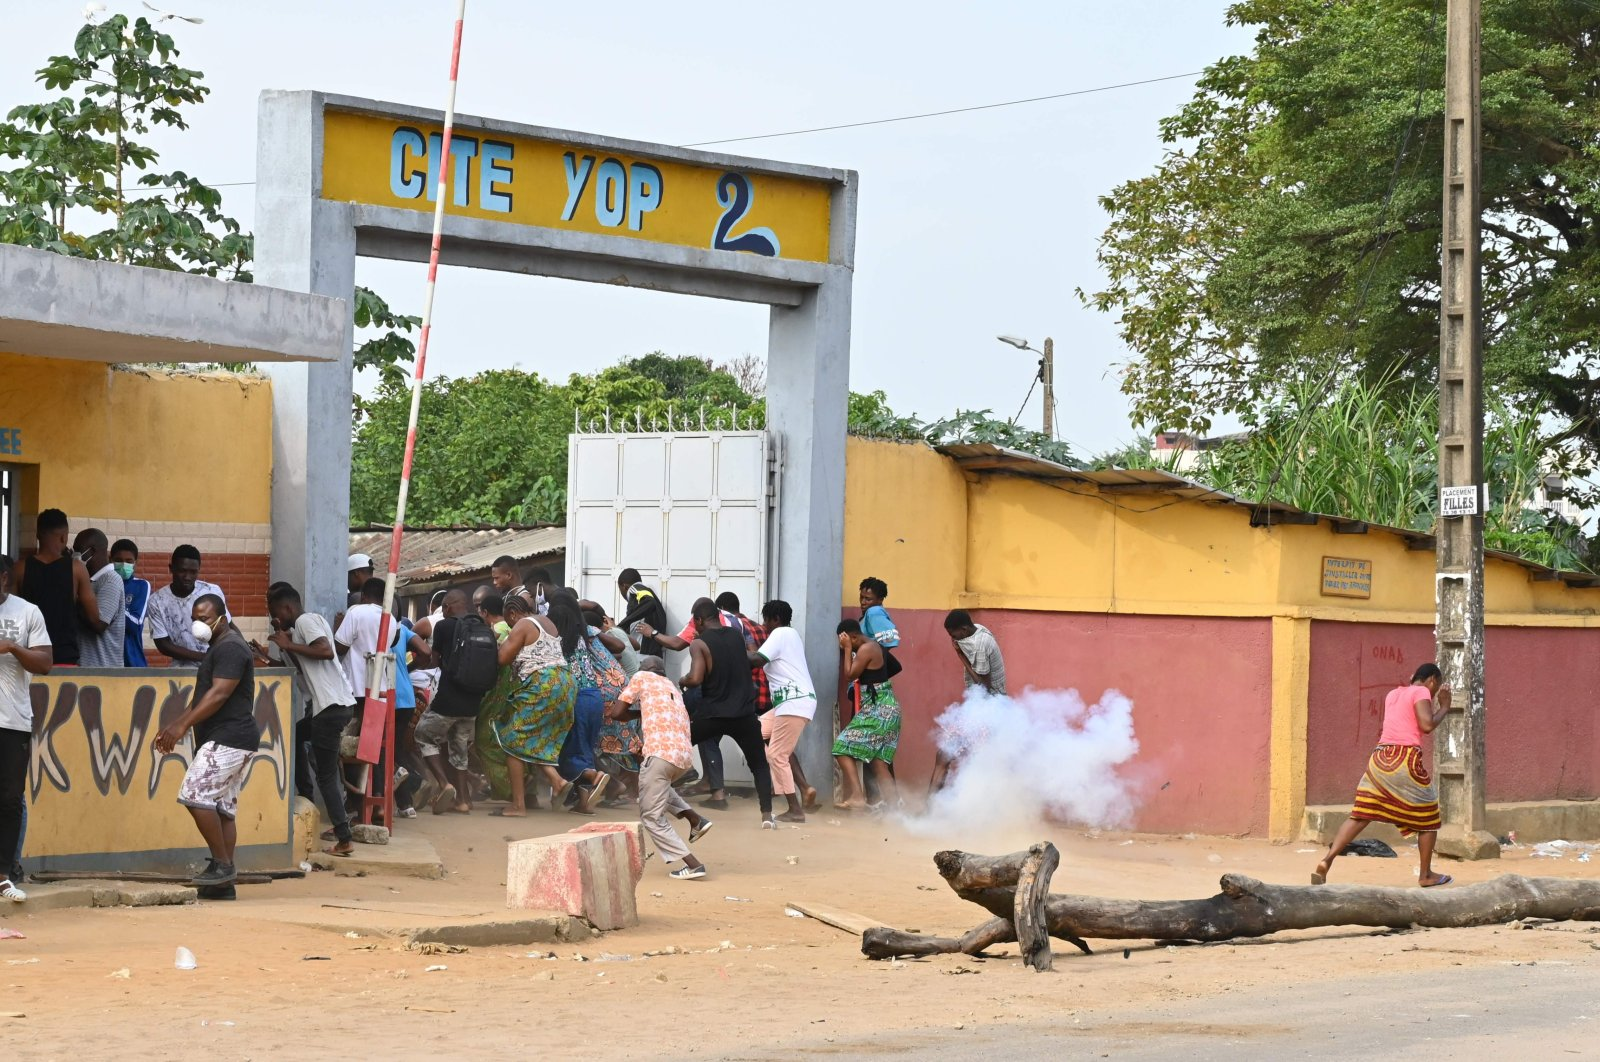 Demonstrators run away during clashes with Ivory Coast anti-riot police at a demonstration against the construction of a COVID-19 coronavirus screening center, Yopougon, Monday, April 6, 2020. (AFP Photo)